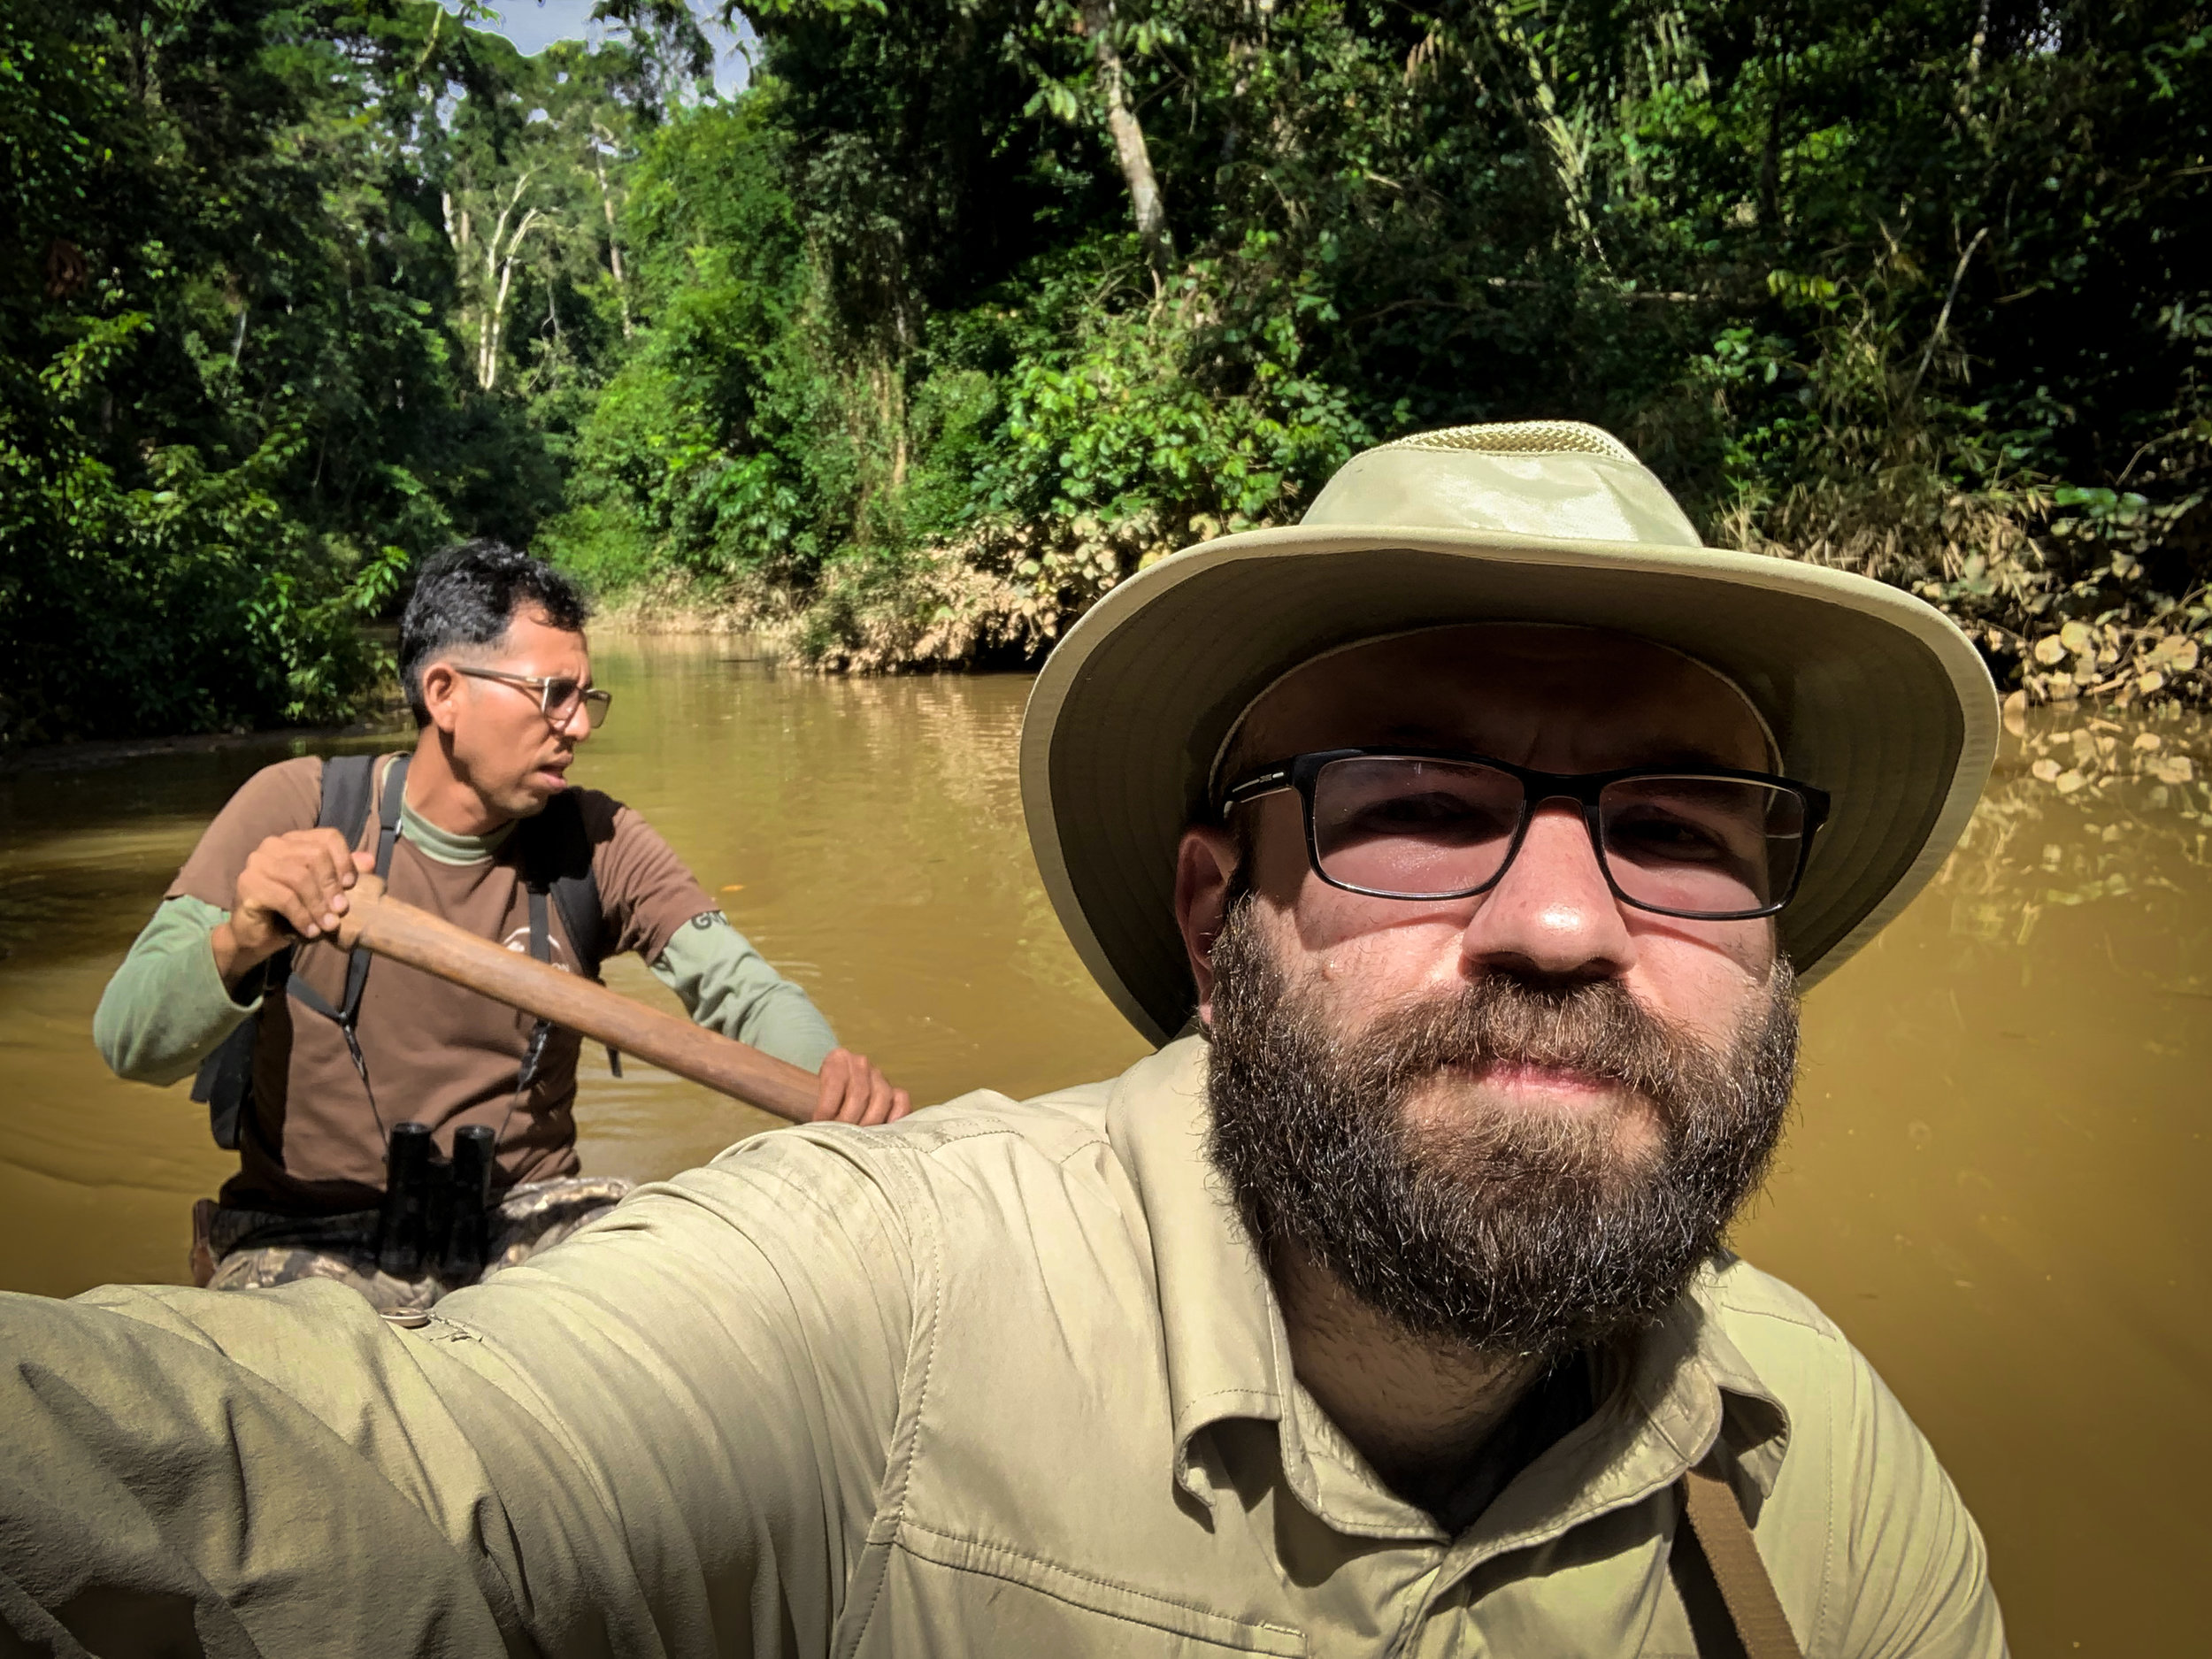 Afternoon canoeing in the Amazon rainforest